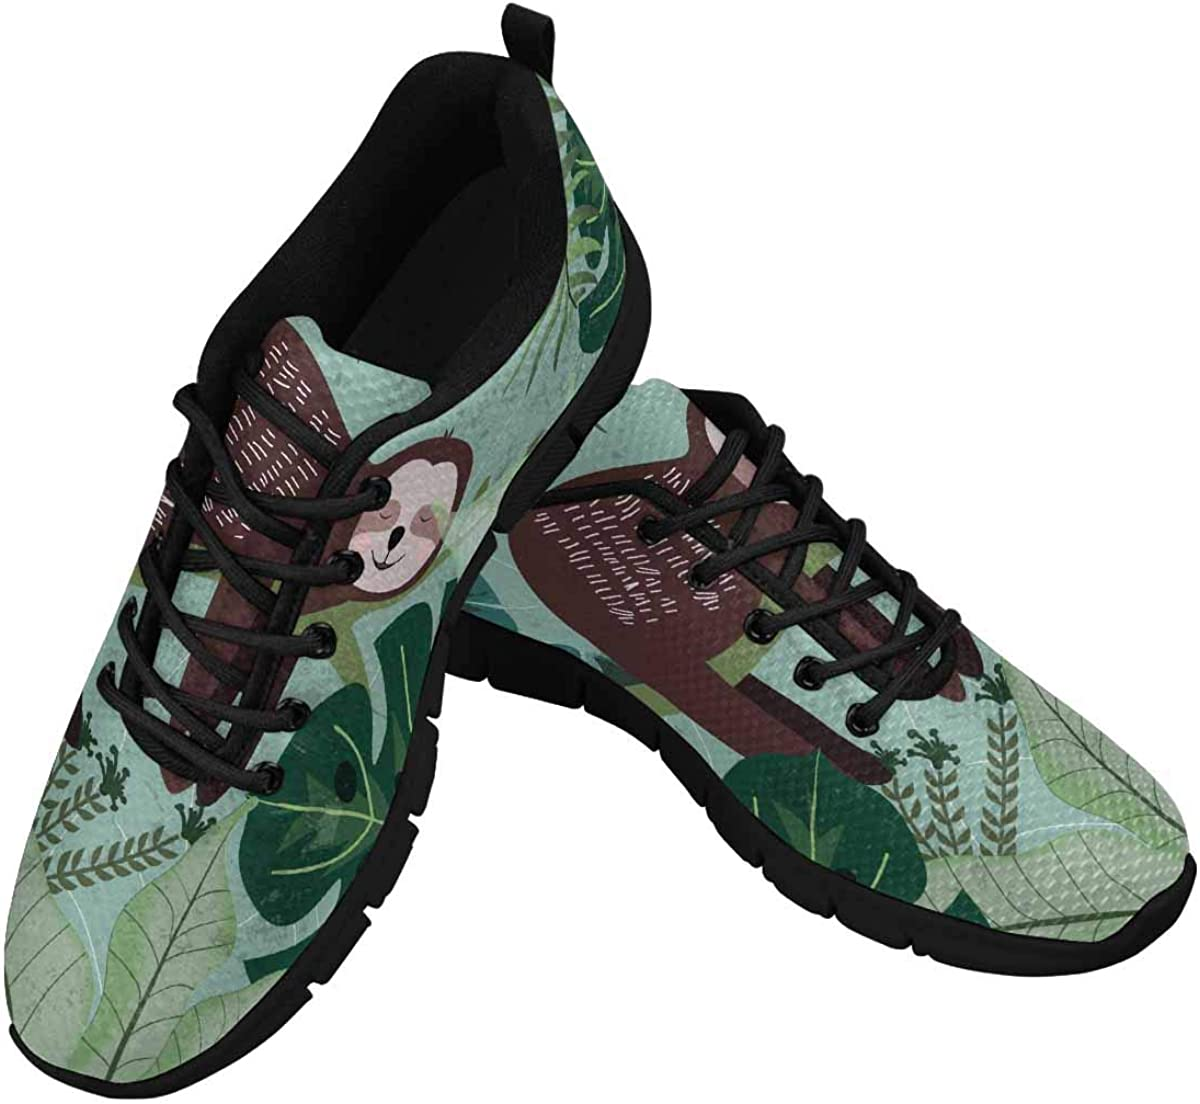 INTERESTPRINT Tropical Summer Sloth Bear Toucan Palm Trees Lightweight Mesh Breathable Sneakers for Women